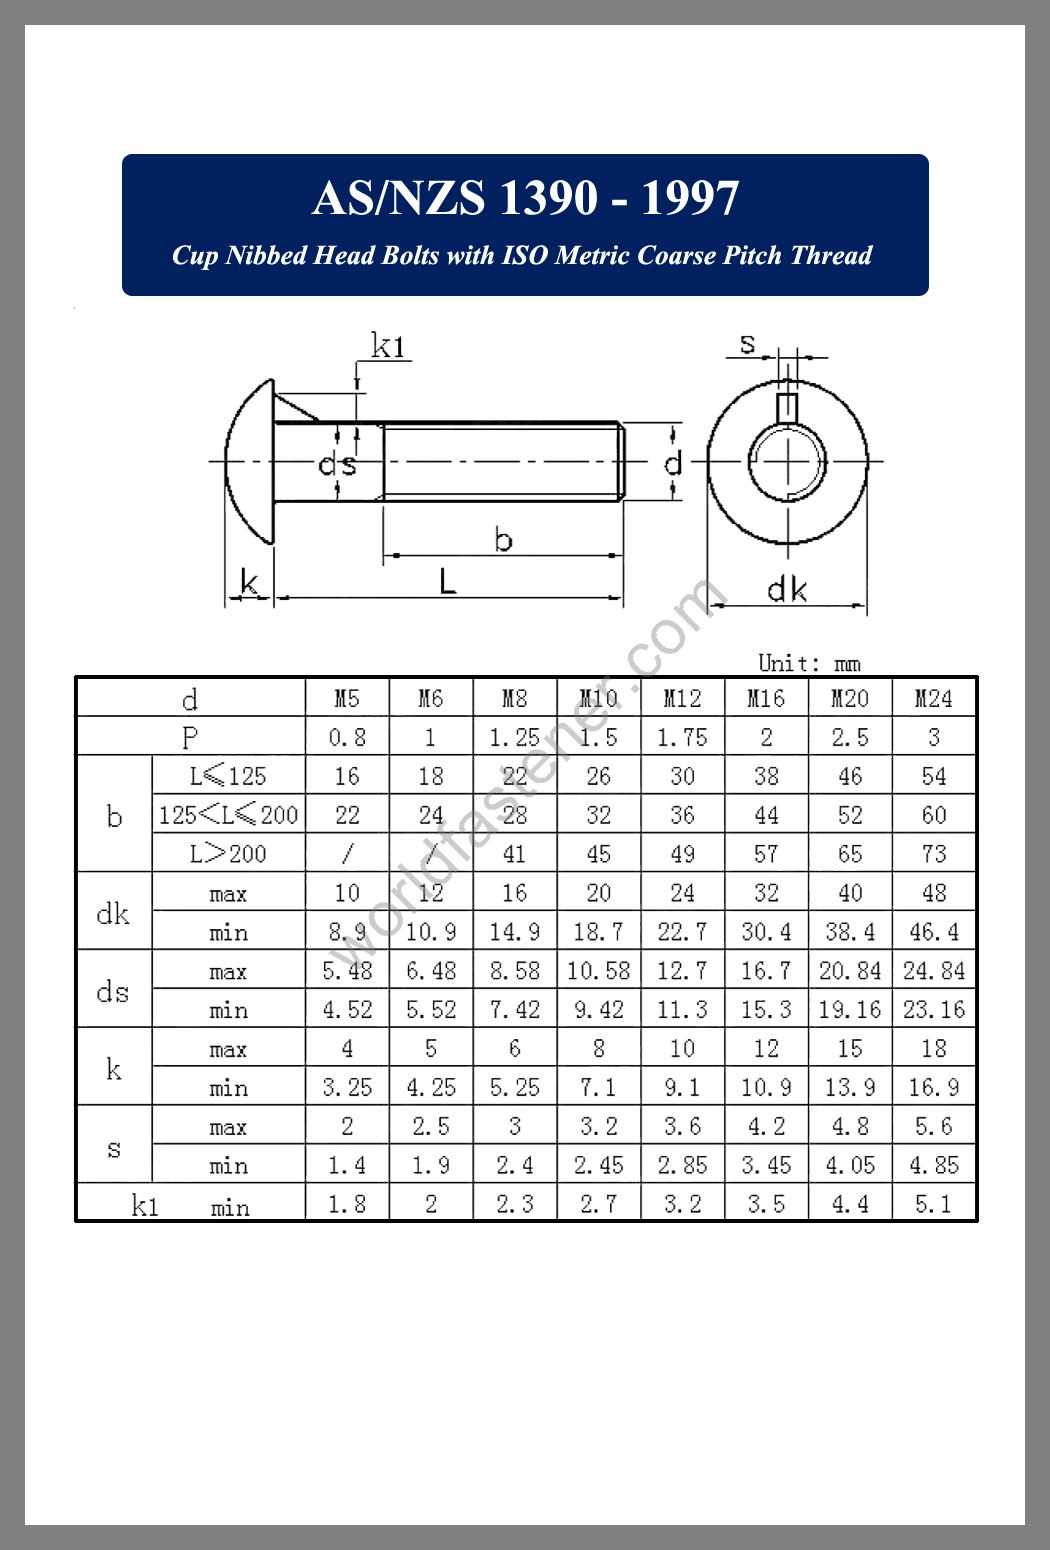 AS/NZS 1390, AS/NZS 1390 Cup Nibbed Head Bolts, fastener, screw, bolt